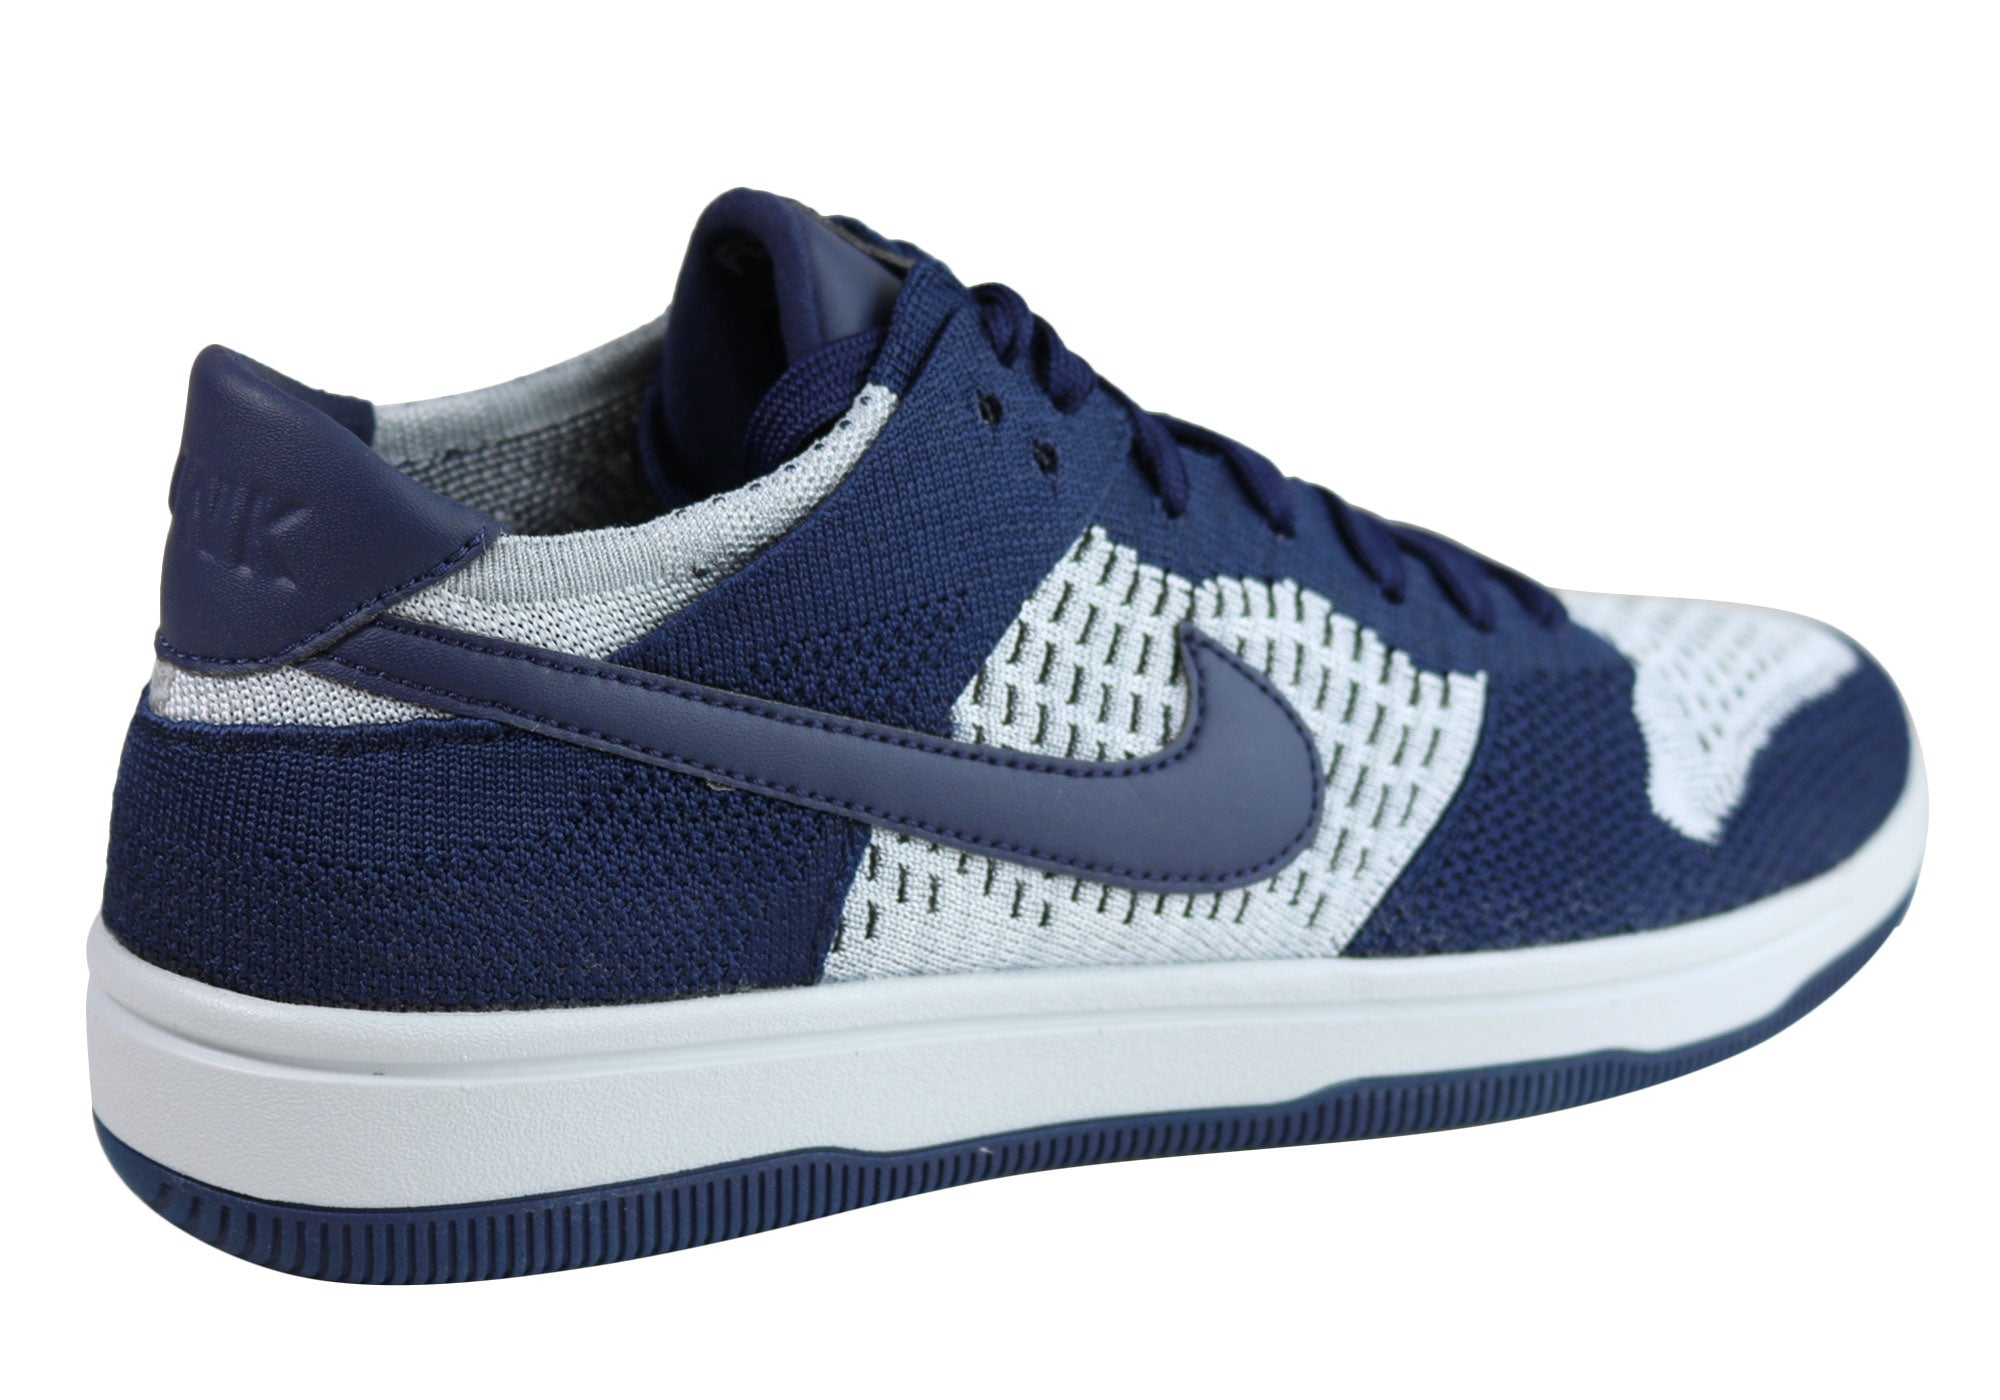 Shop Nike Mens Dunk Flyknit Casual Shoes Lightweight Low Top